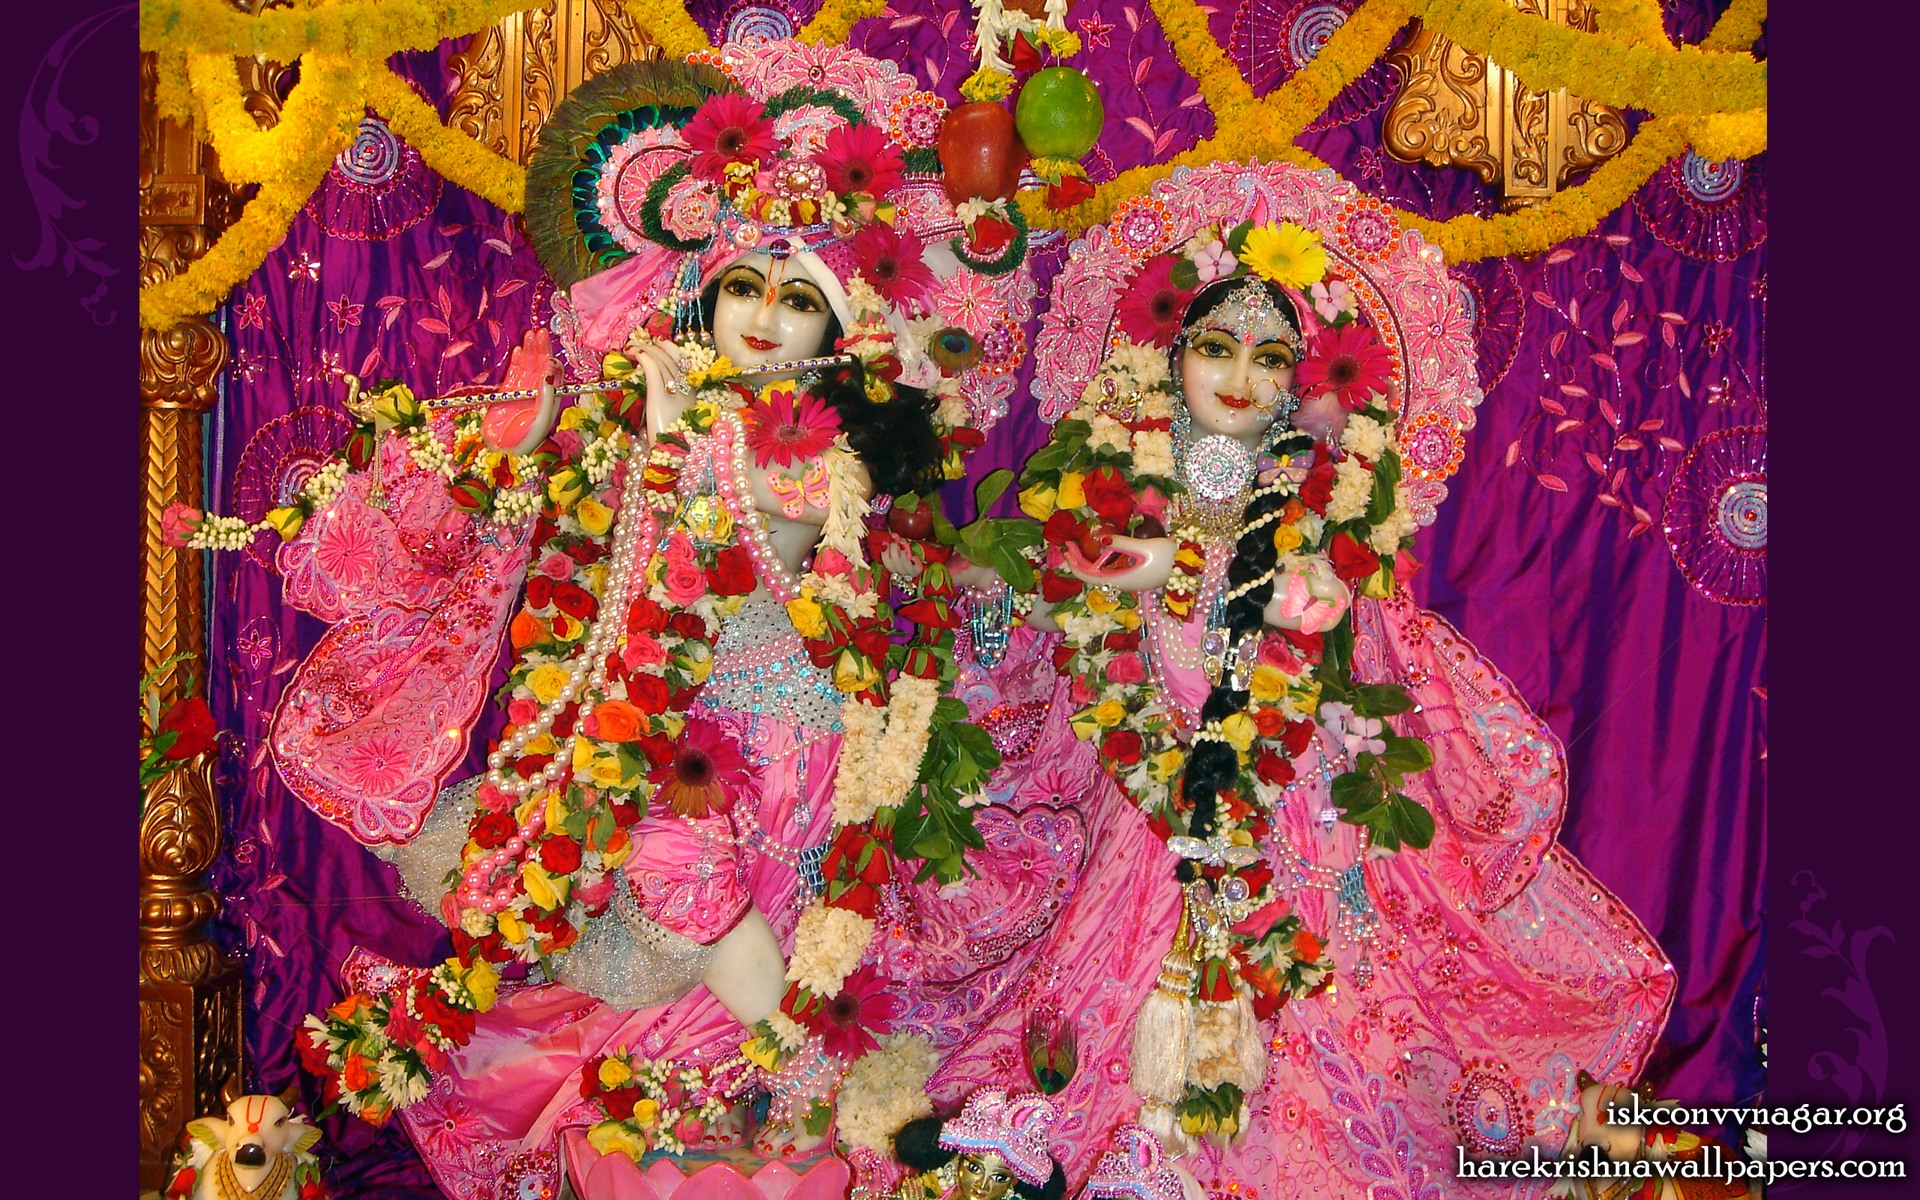 Sri Sri Radha Giridhari Wallpaper (002) Size 1920x1200 Download